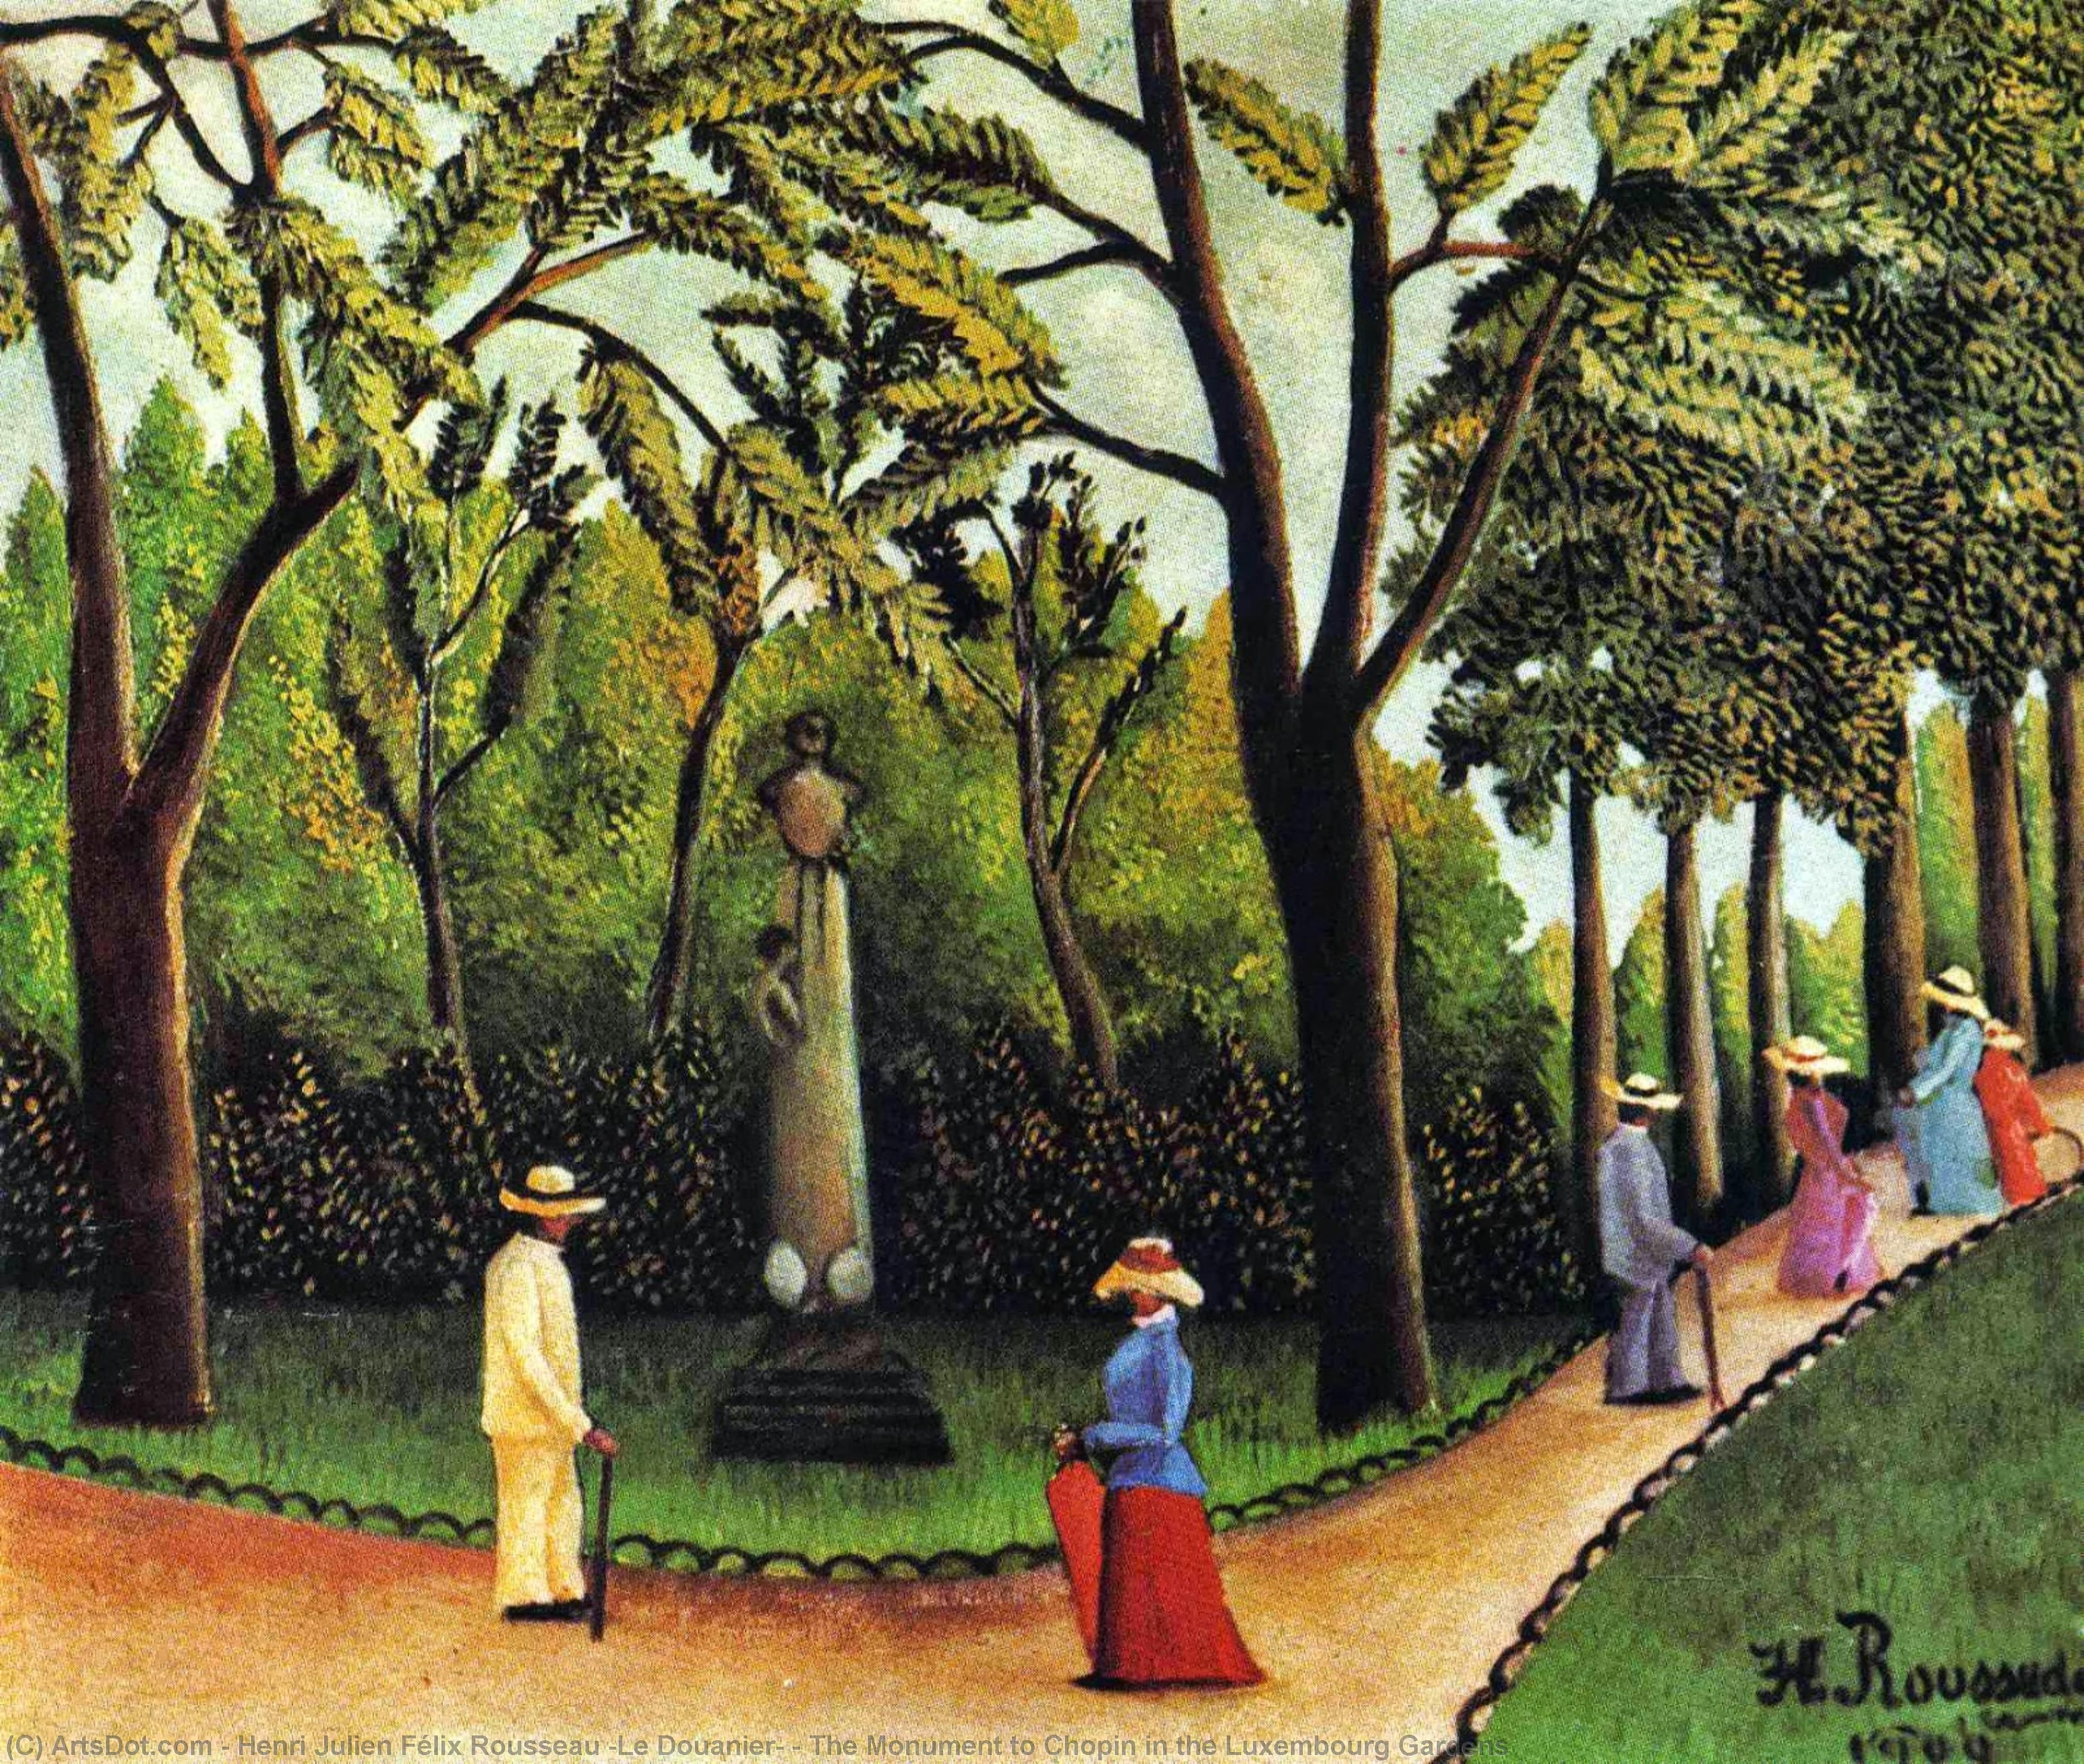 Wikioo.org - The Encyclopedia of Fine Arts - Painting, Artwork by Henri Julien Félix Rousseau (Le Douanier) - The Monument to Chopin in the Luxembourg Gardens